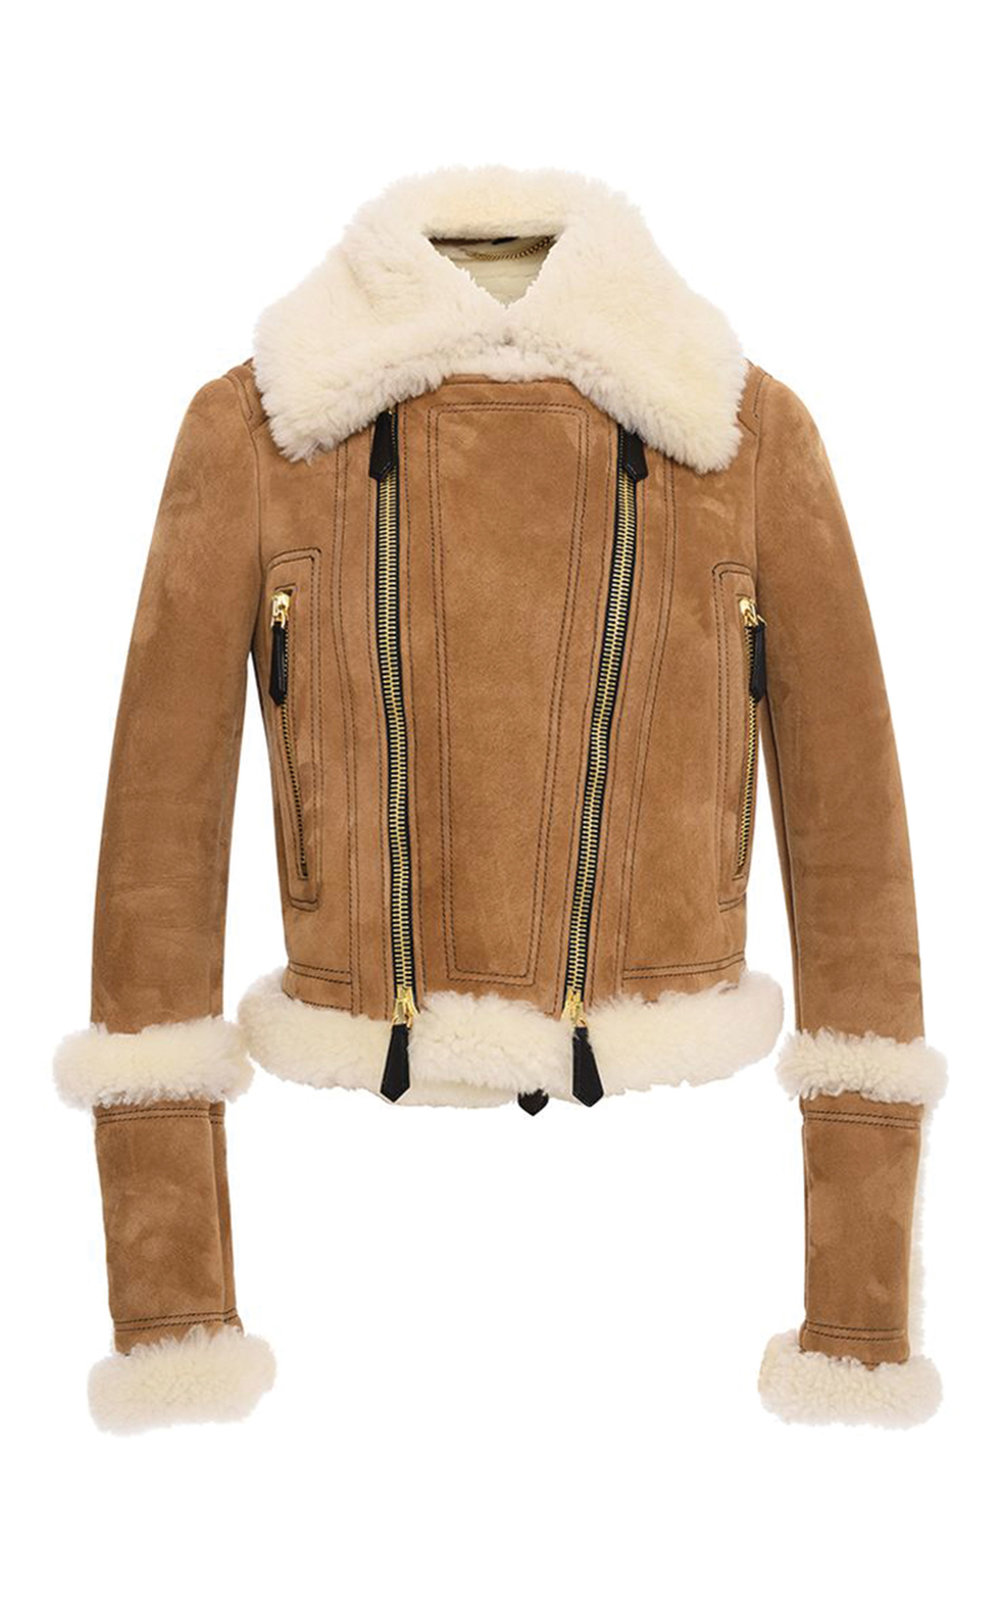 Burberry Shearling Biker Jacket $6,250